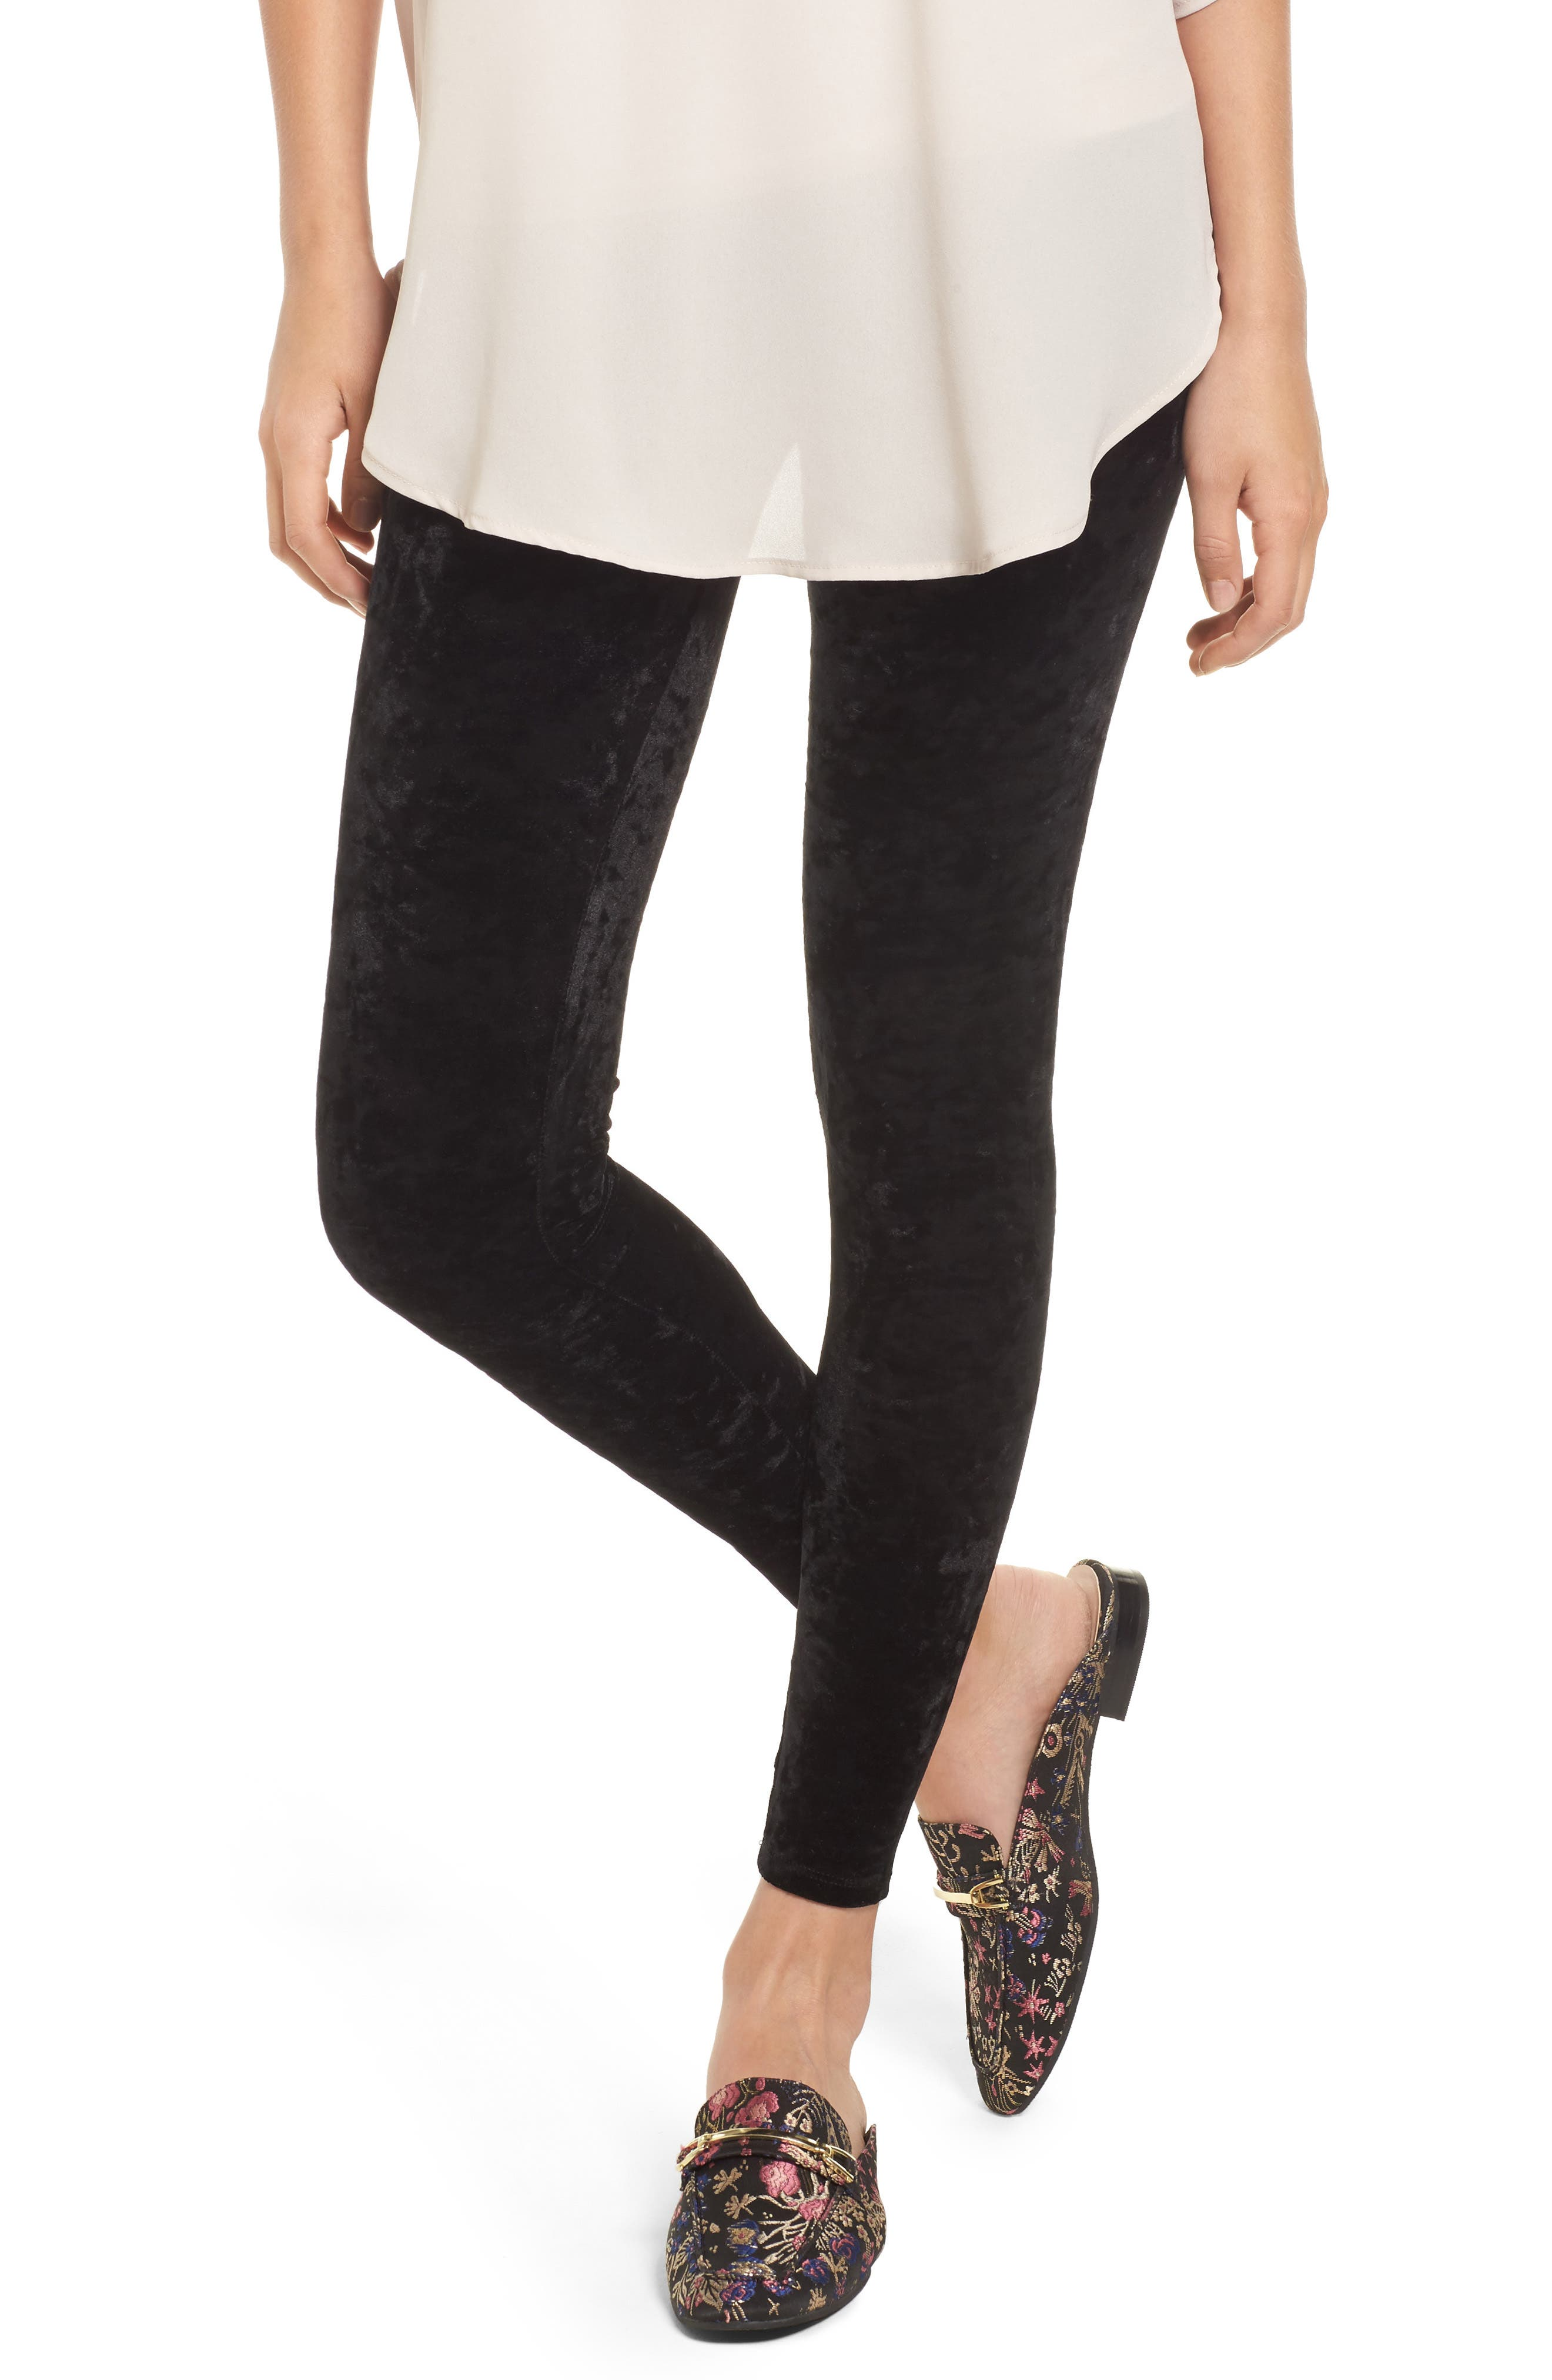 Nordstrom Velvet Leggings